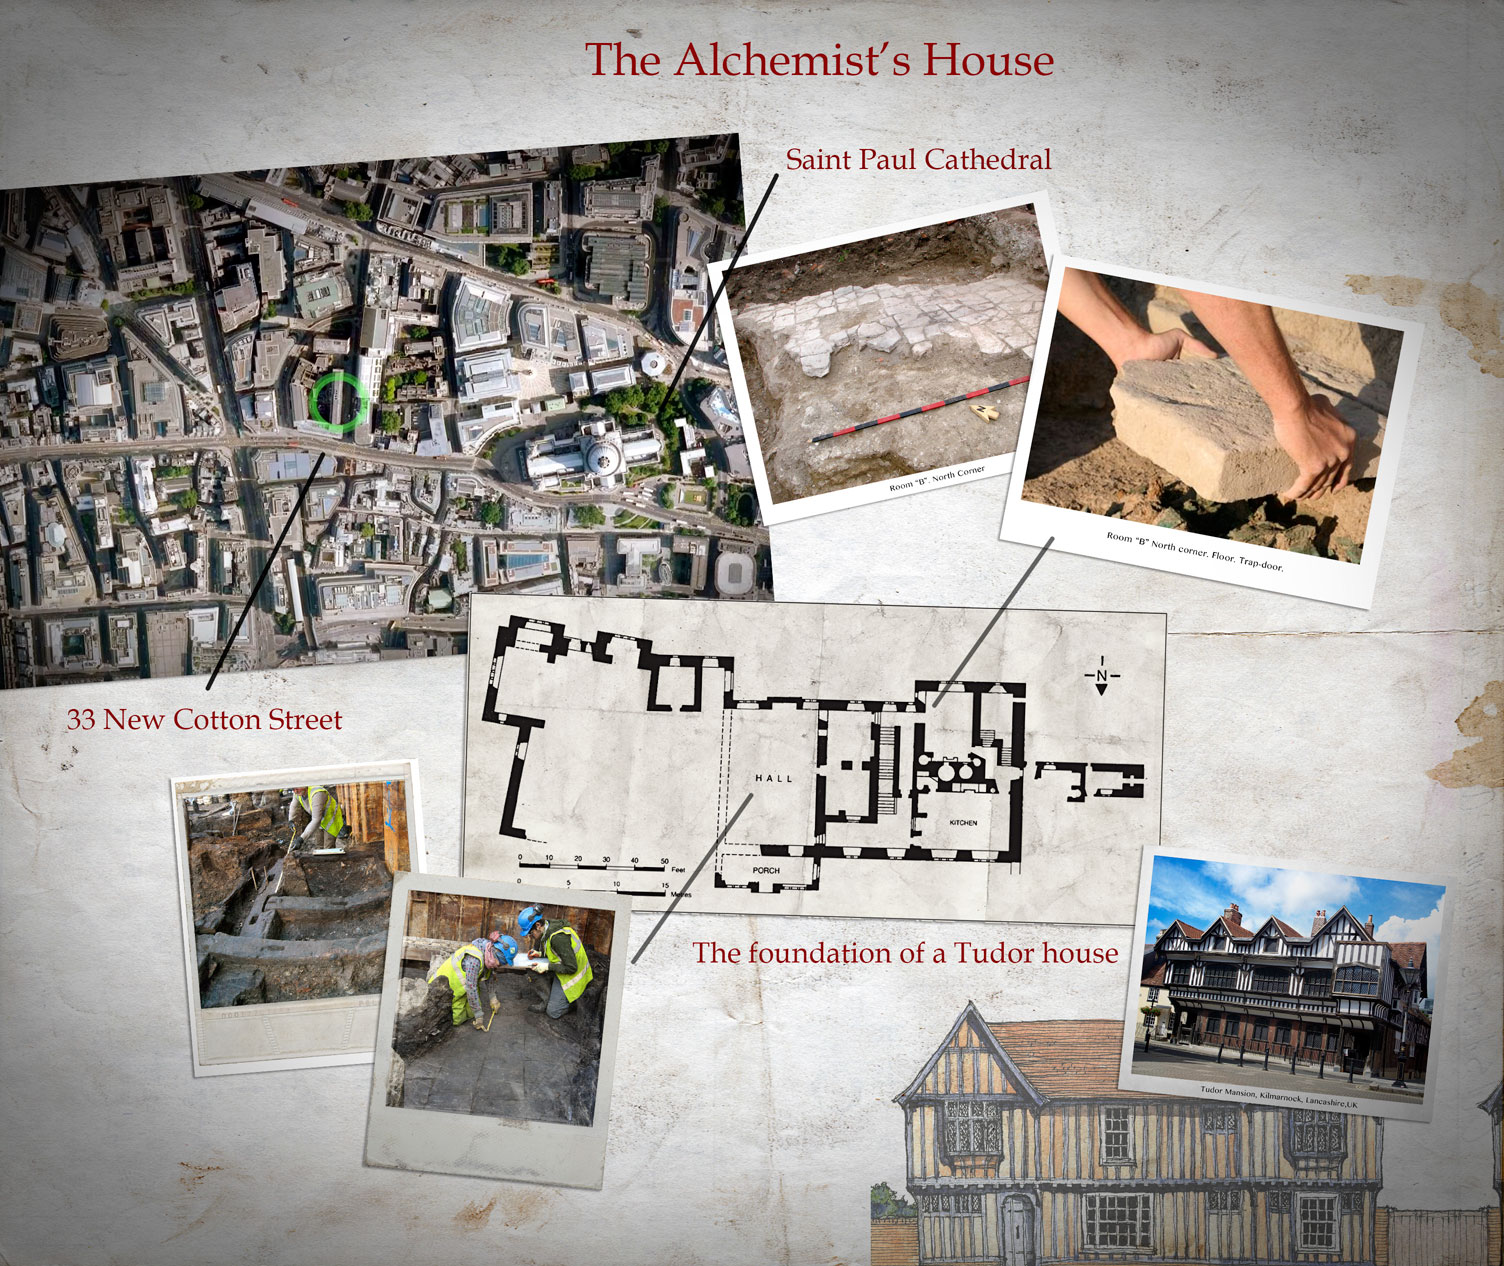 The Discovery of the Alchemist's laboratory in London